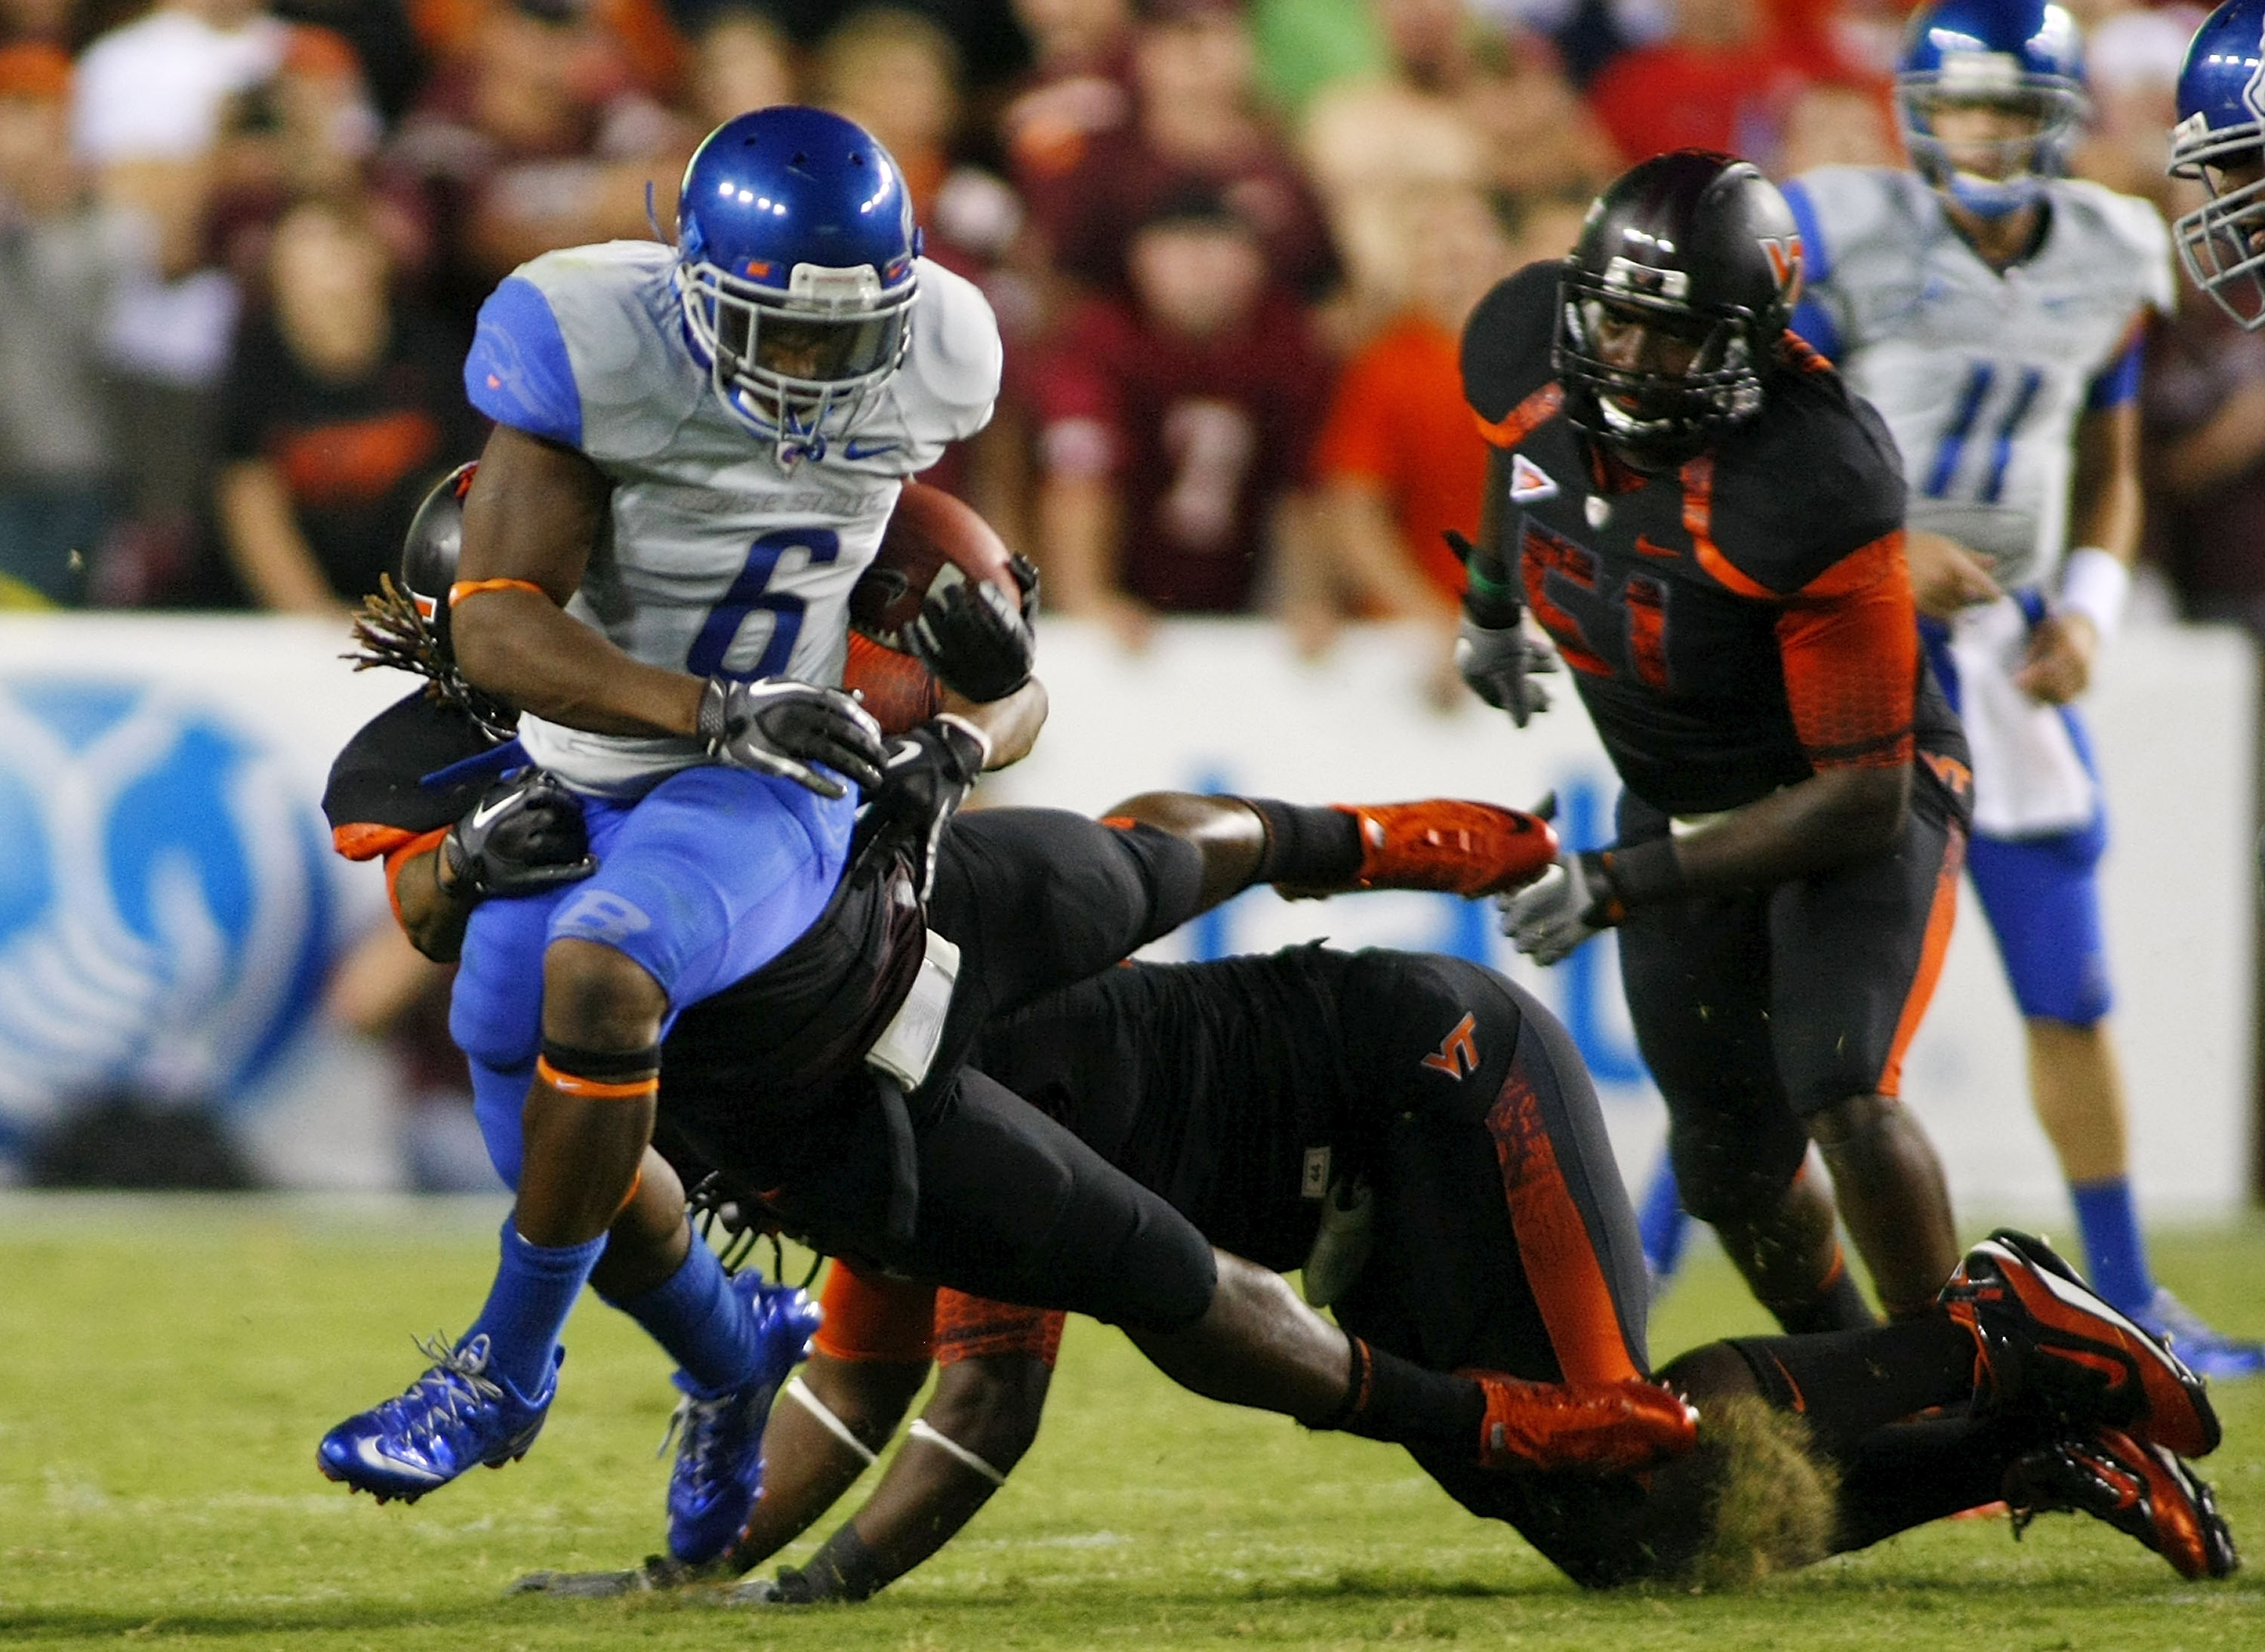 LANDOVER, MD - SEPTEMBER 06:  Running back D.J. Harper #6 of the Boise State Broncos runs with the ball past linebacker Lyndell Gibson #44 of the Virginia Tech Hokies at FedExField on September 6, 2010 in Landover, Maryland.  (Photo by Geoff Burke/Getty I